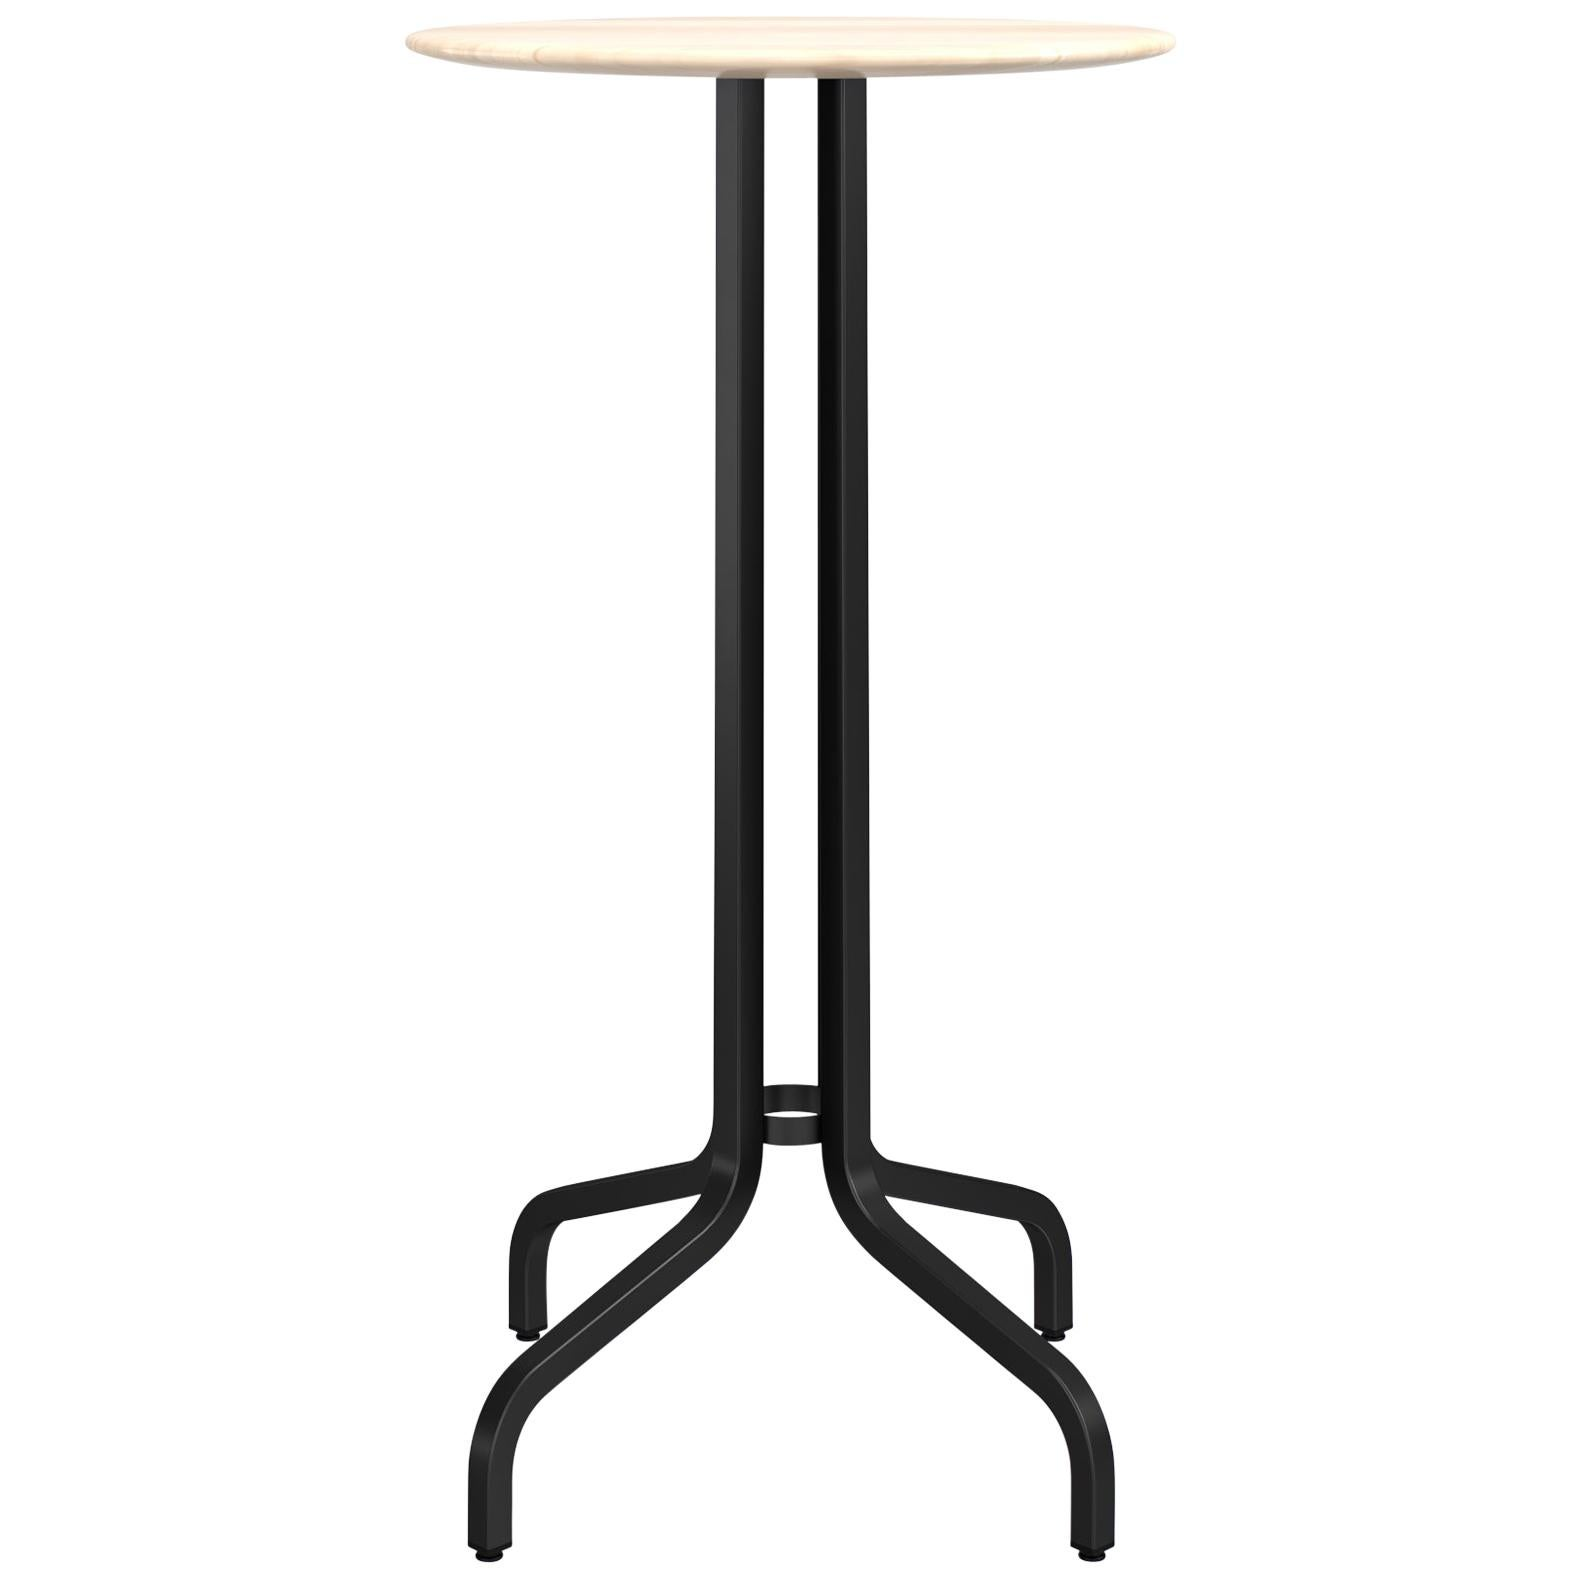 Emeco 1 Inch Small Round Bar Table with Black Legs & Wood Top by Jasper Morrison